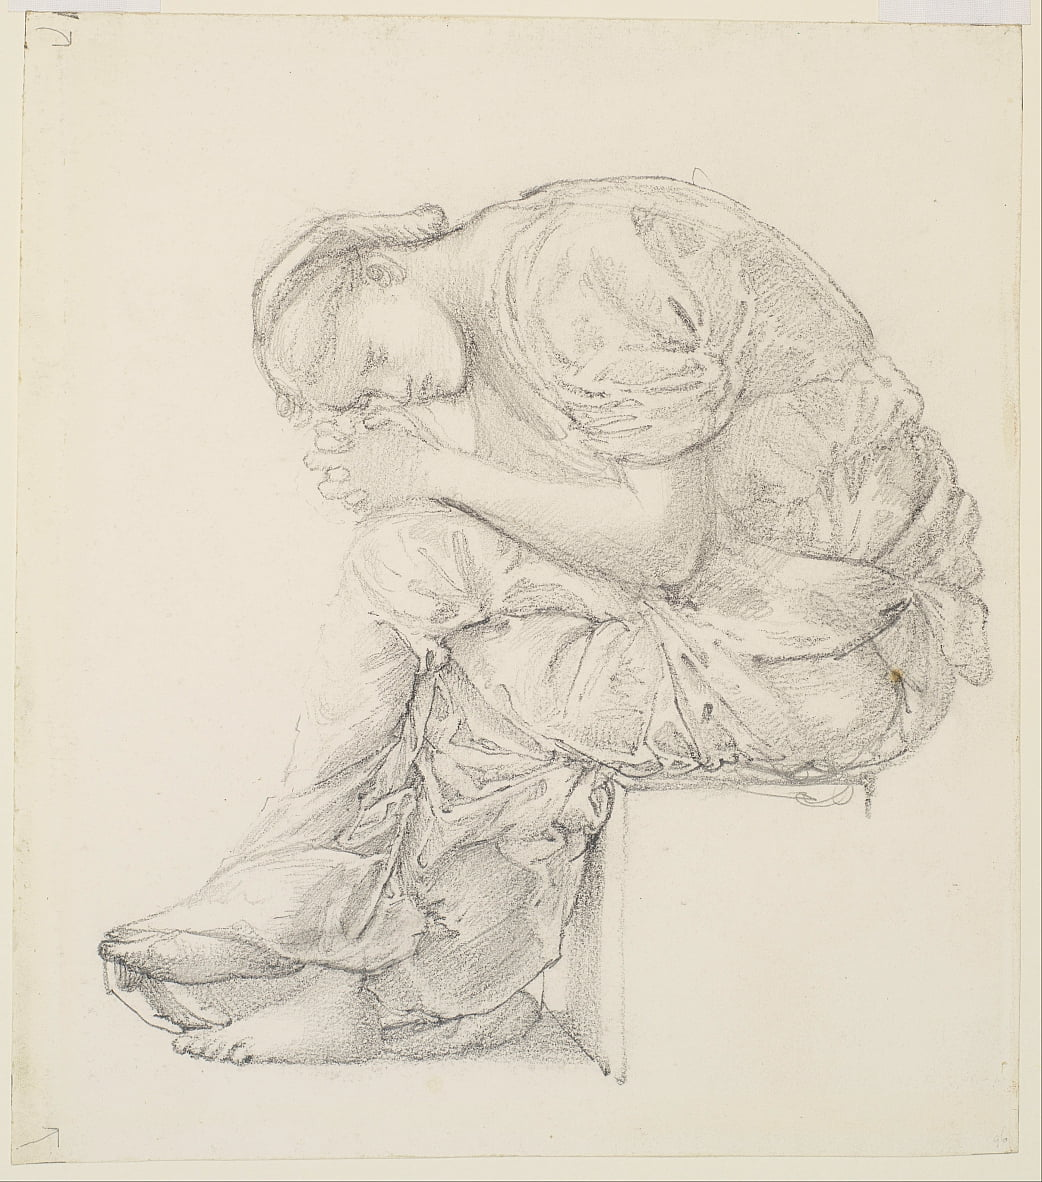 The Lament - Edward Burne Jones